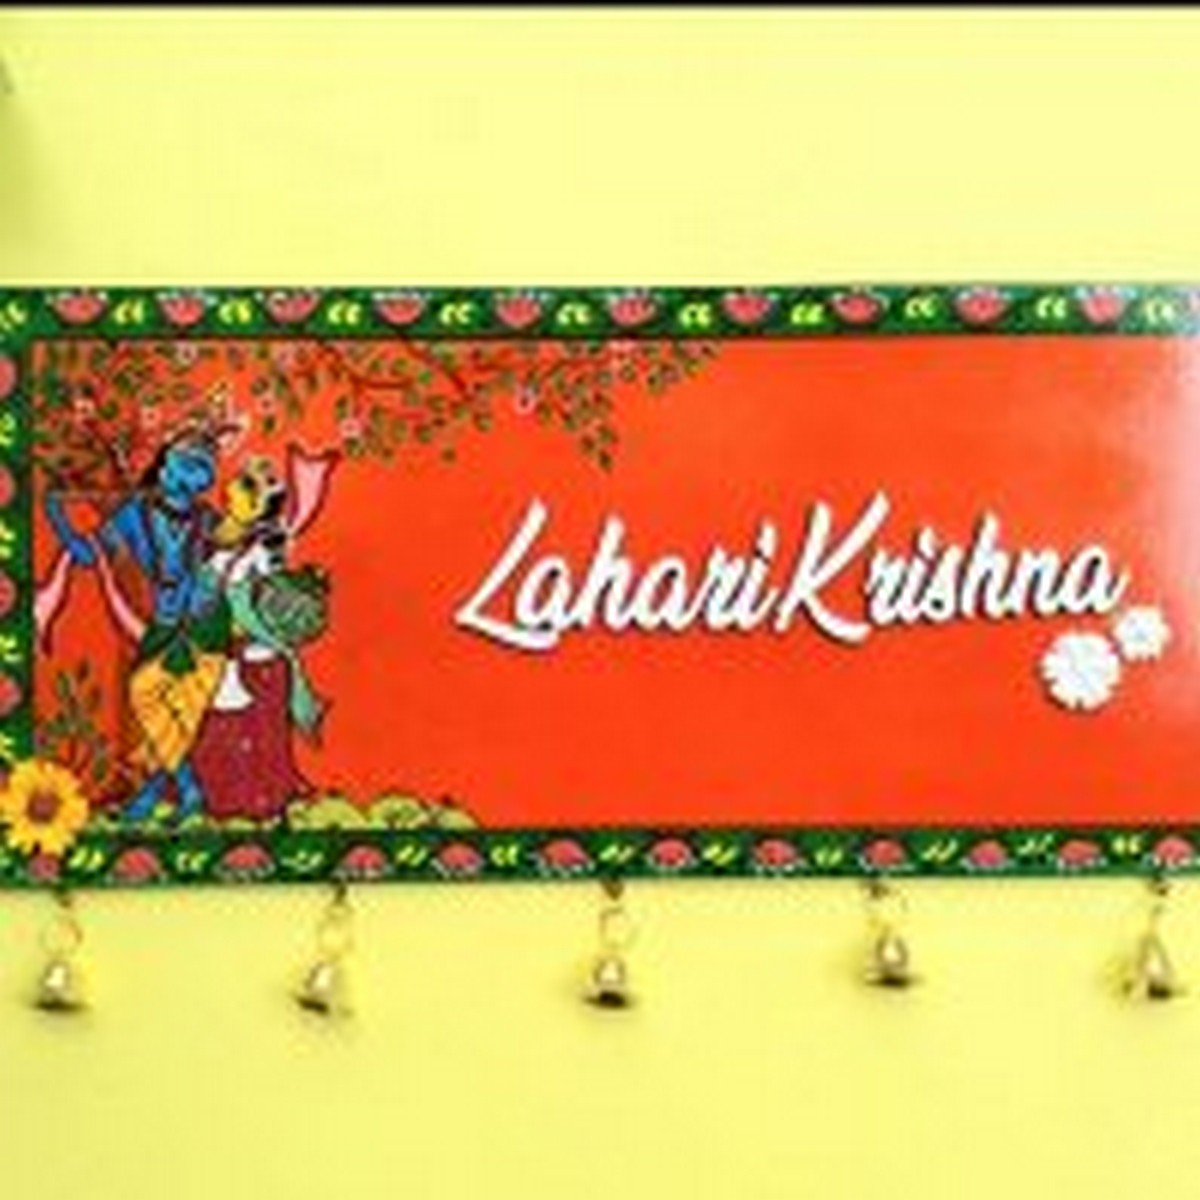 Customized Patachitra Painted Wooden Nameplate  Patachitra painted Wooden Nameplate